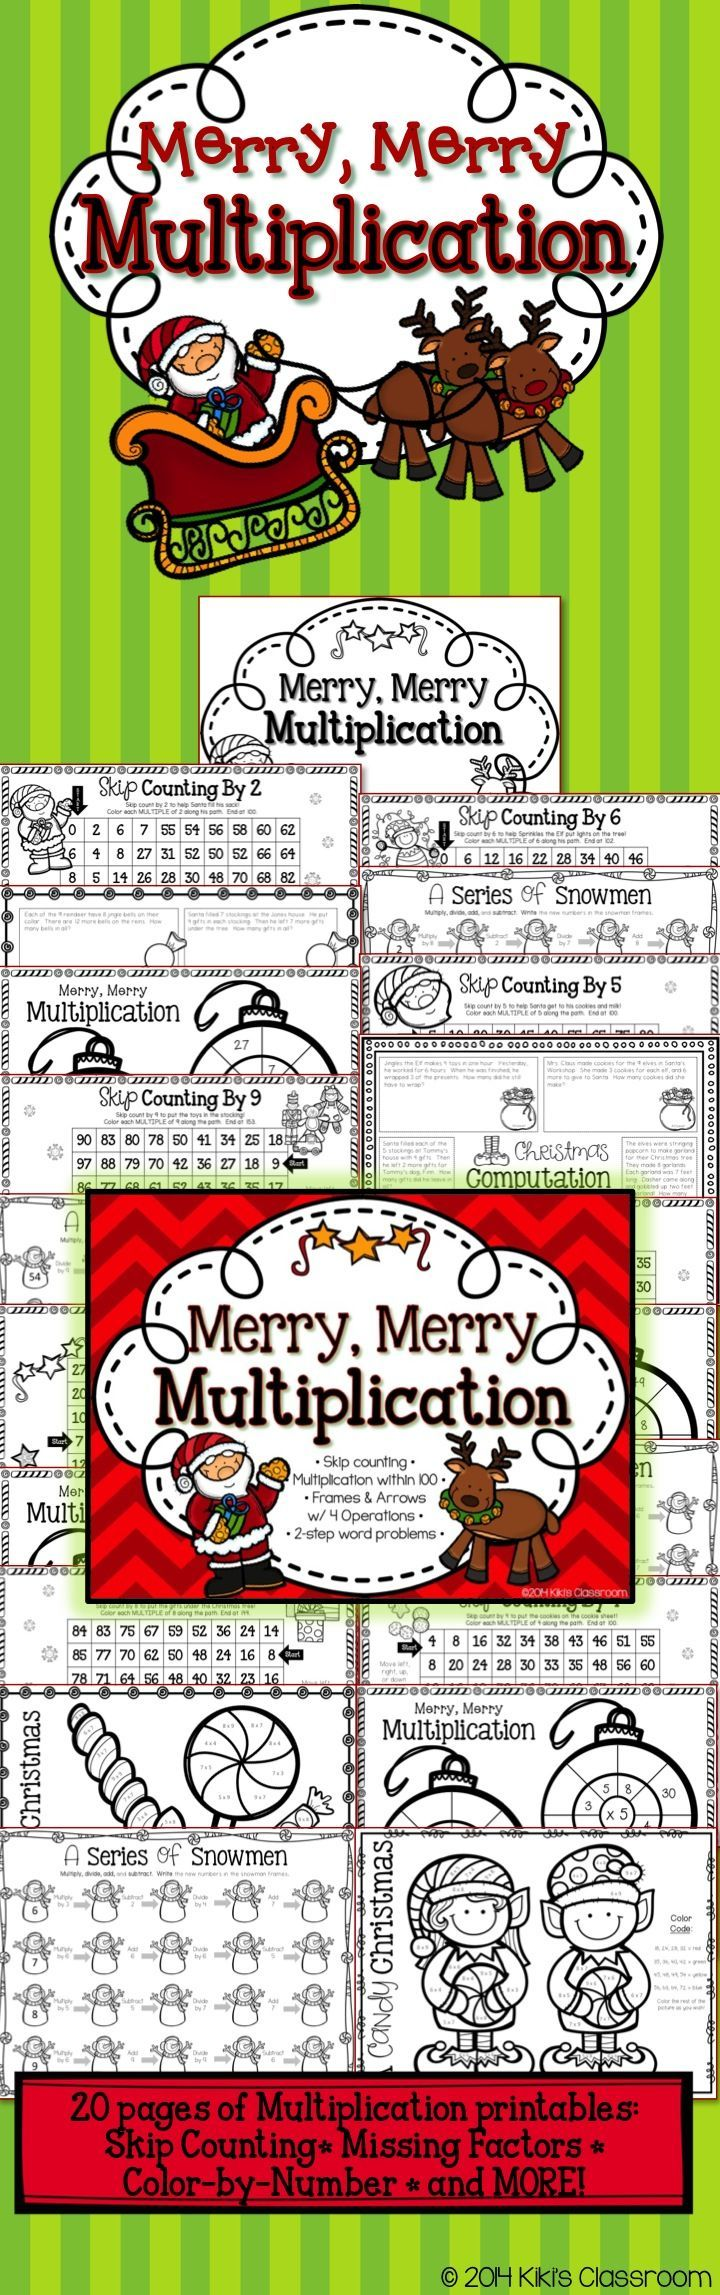 Third Grade Christmas Math • 20 fun, seasonal, MULTIPLICATION printables! Cute and engaging for the holiday season: